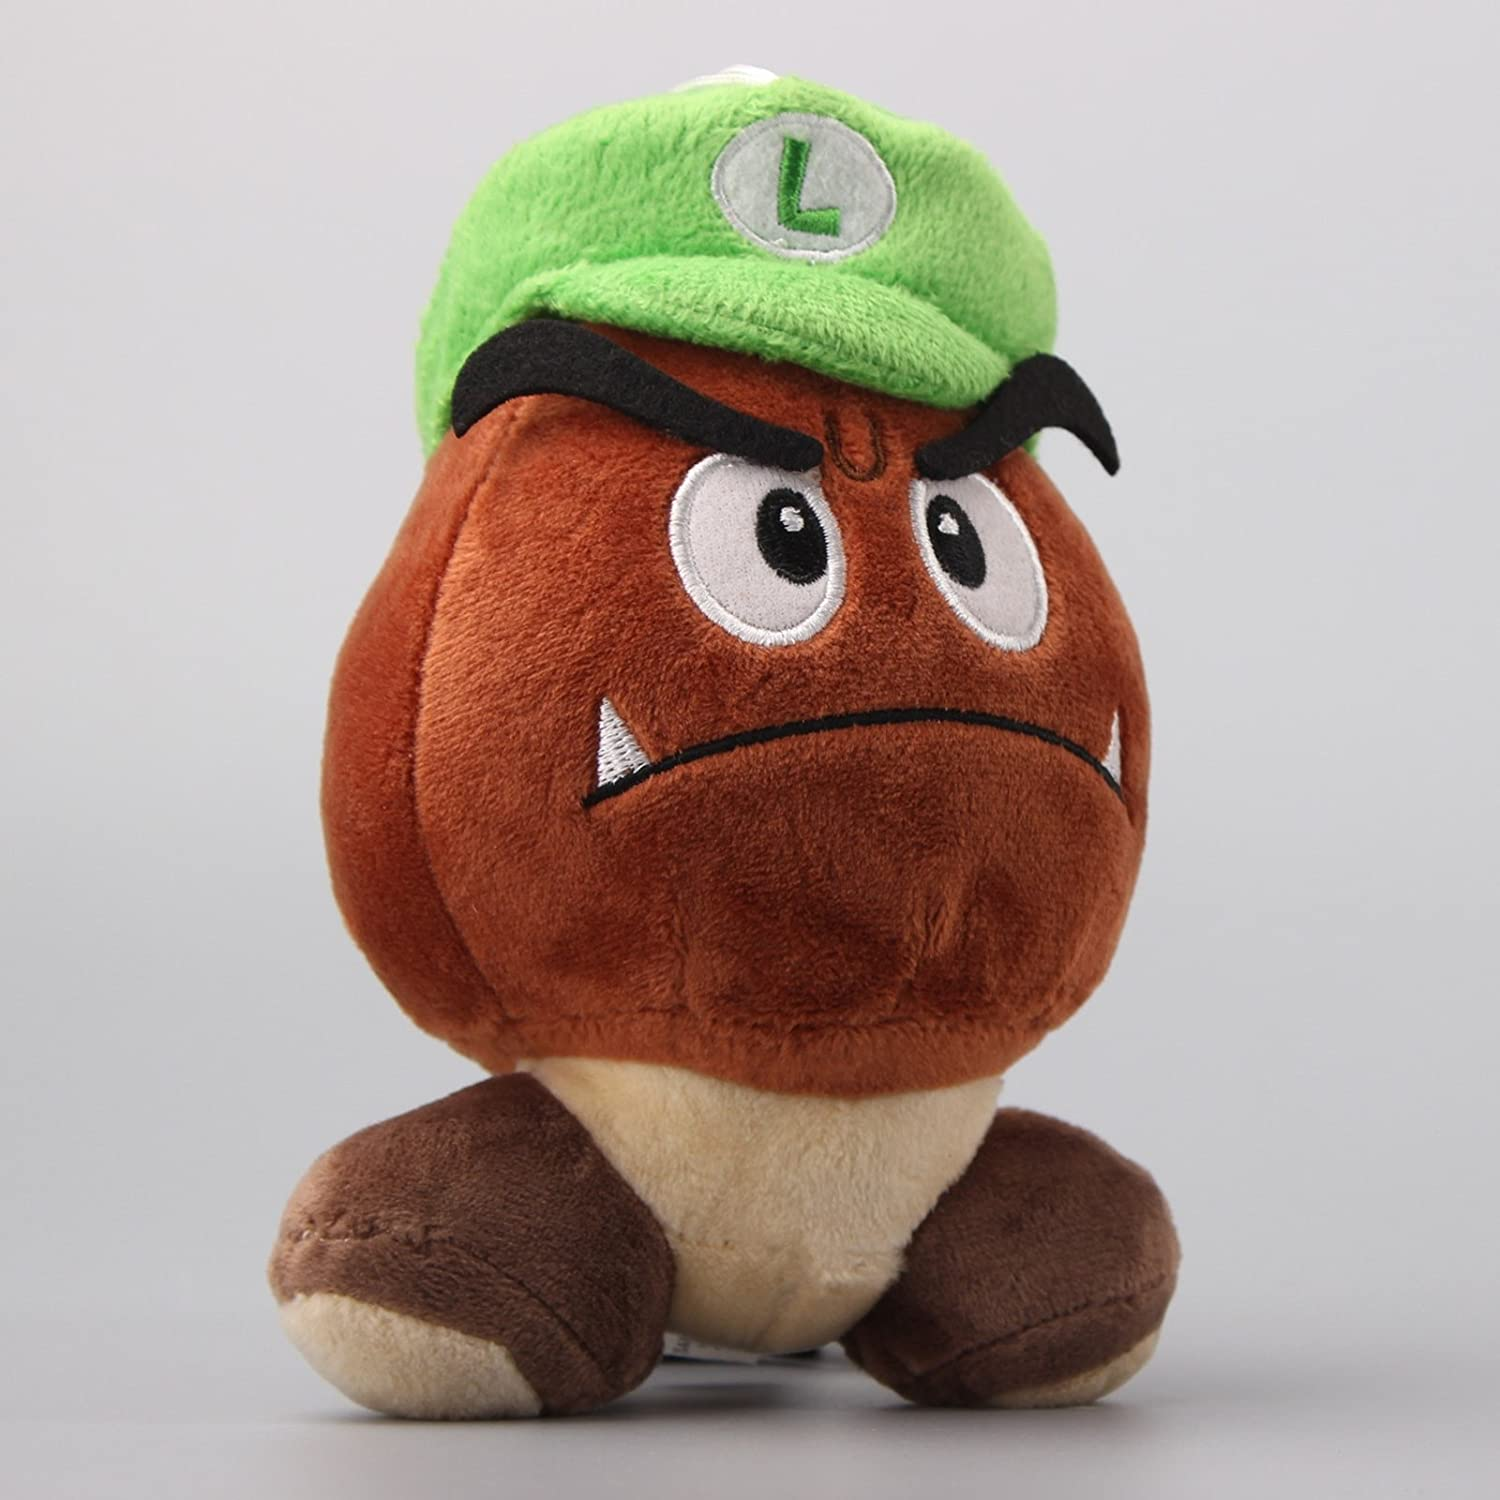 893be93bc41 Amazon.com  uiuoutoy Super Mario Bros. Goomba with Luigi HAT Stuffed Plush  6    Toys   Games